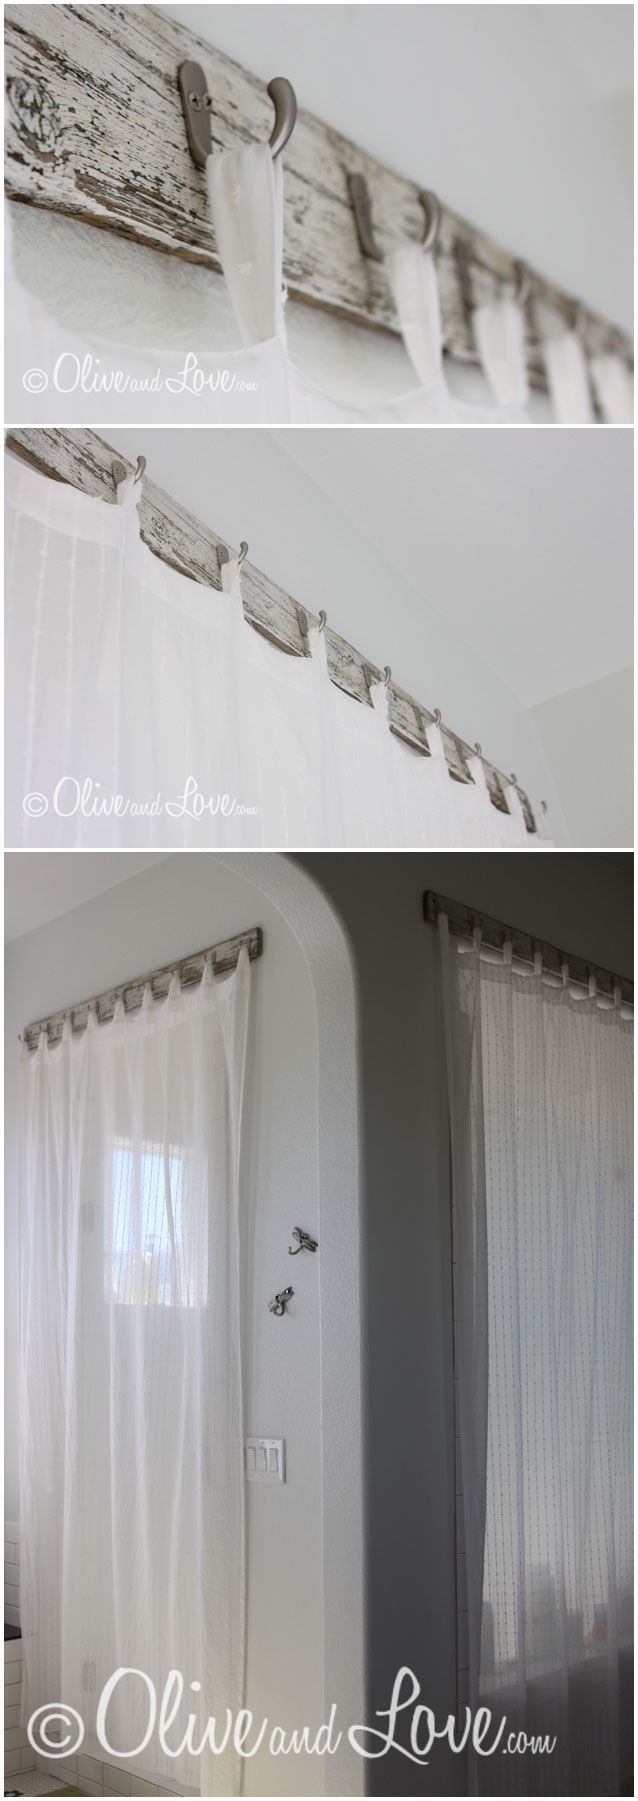 Best 25 Hanging Curtains Ideas Only On Pinterest Window In Hanging Curtains (View 16 of 25)